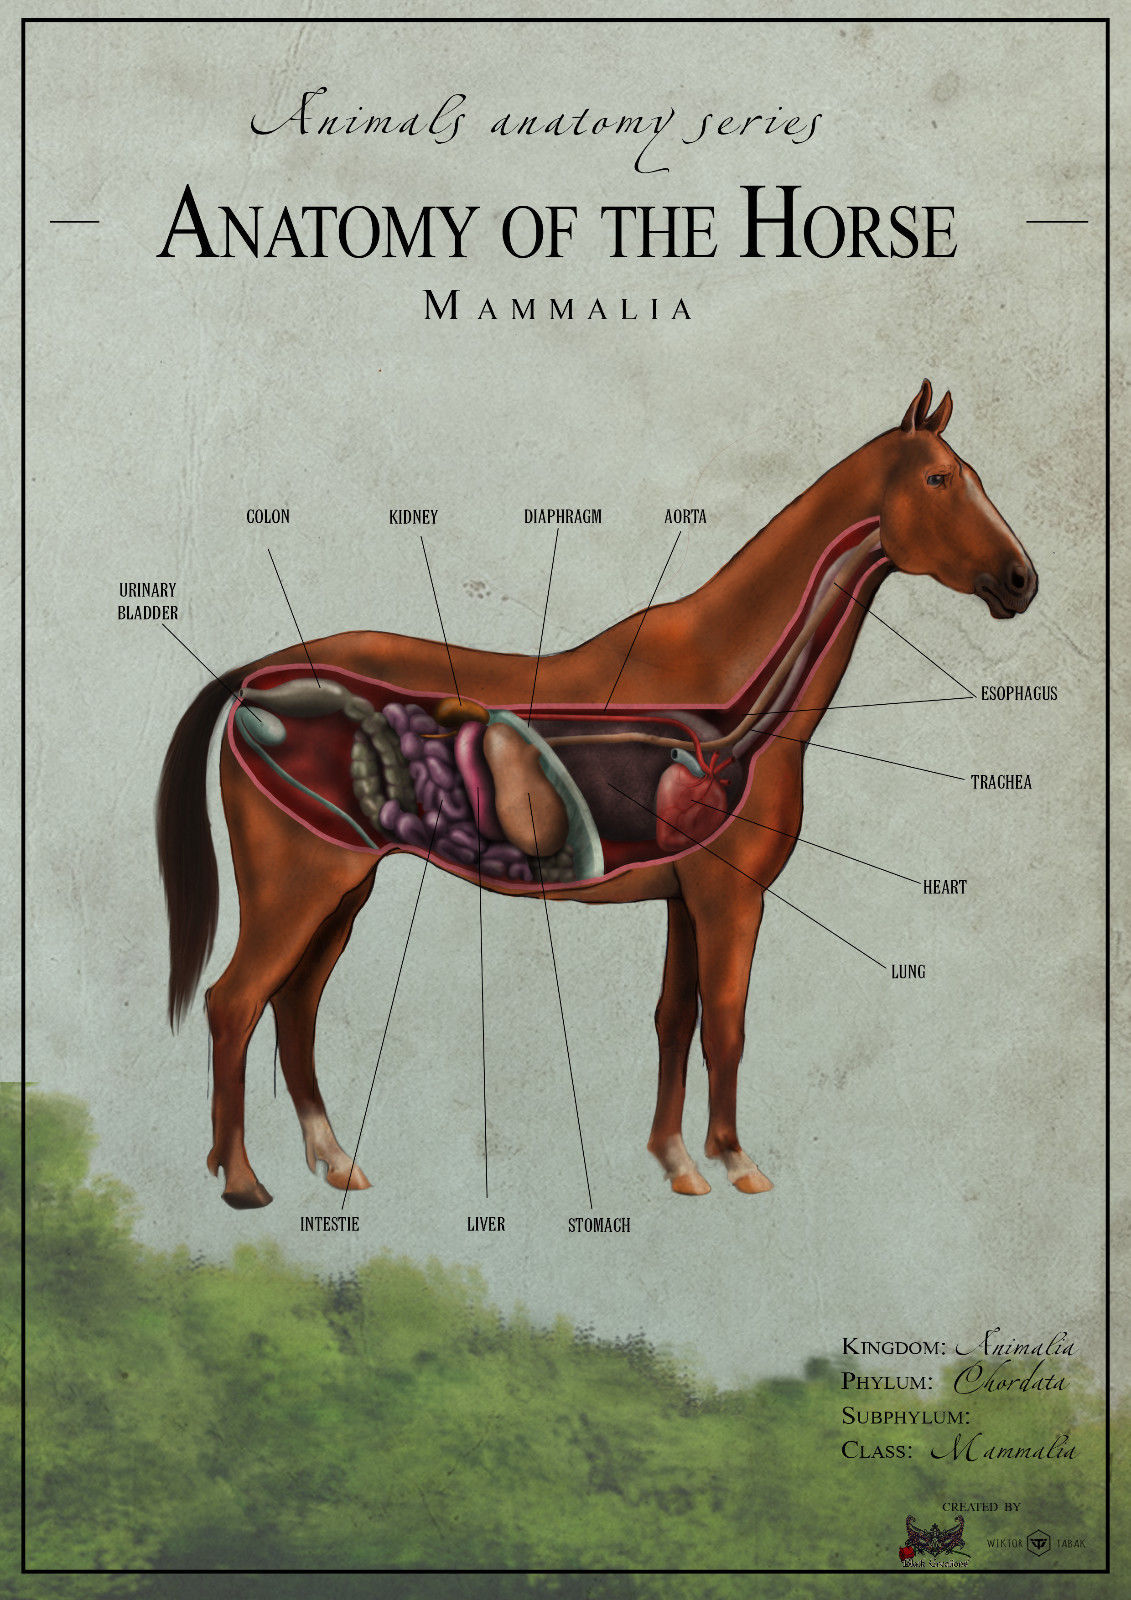 The Horse Anatomy Biology Poster Canvas Art And 50 Similar Items